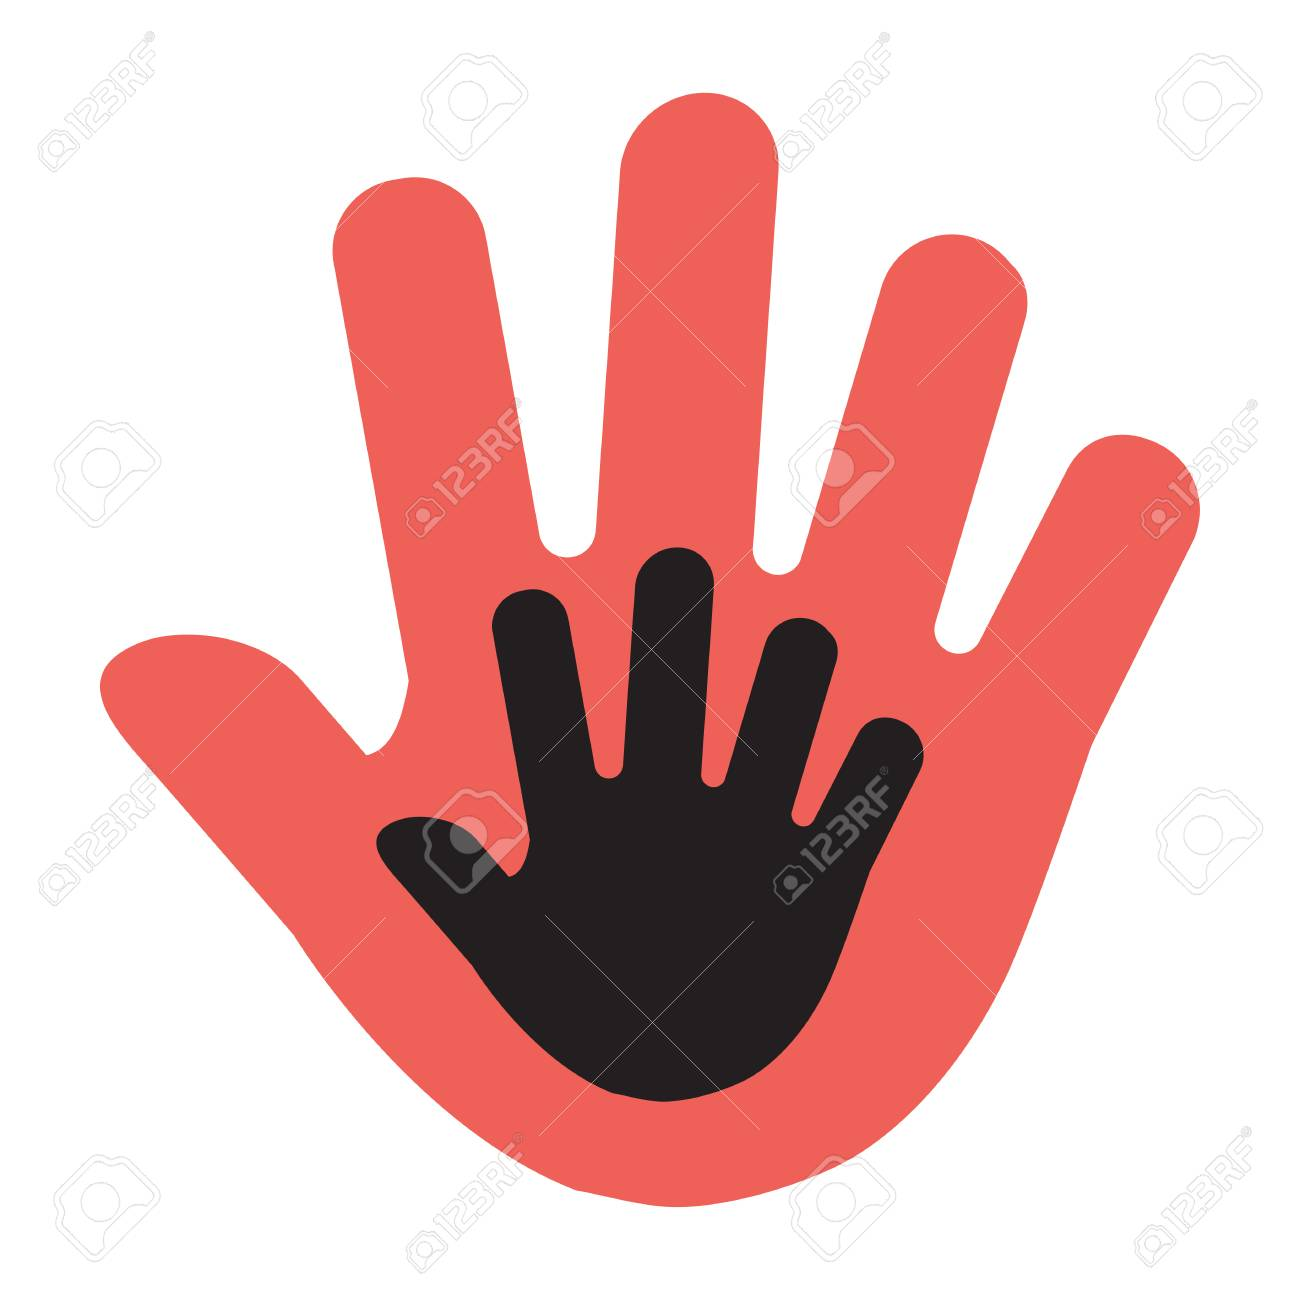 Hand of a child in an adult hand, red and black illustration. Vector illustration - 121678877